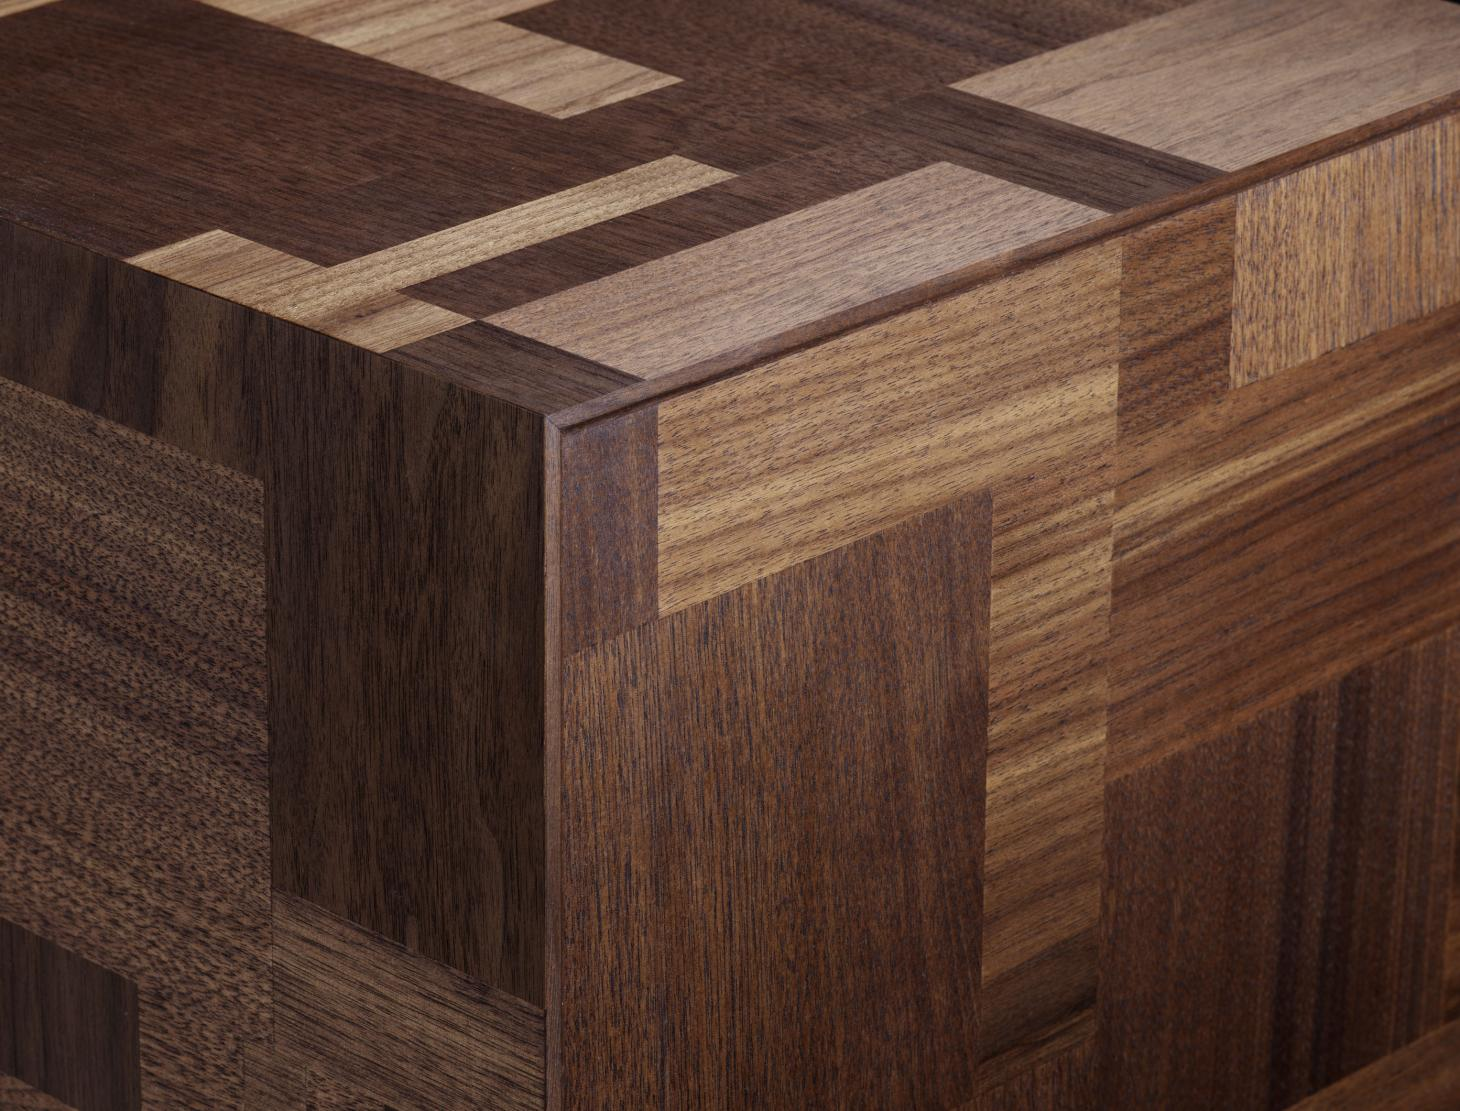 Detail shot showing a corner of a bedside table made of walnut and featuring an intarsia patterned motif